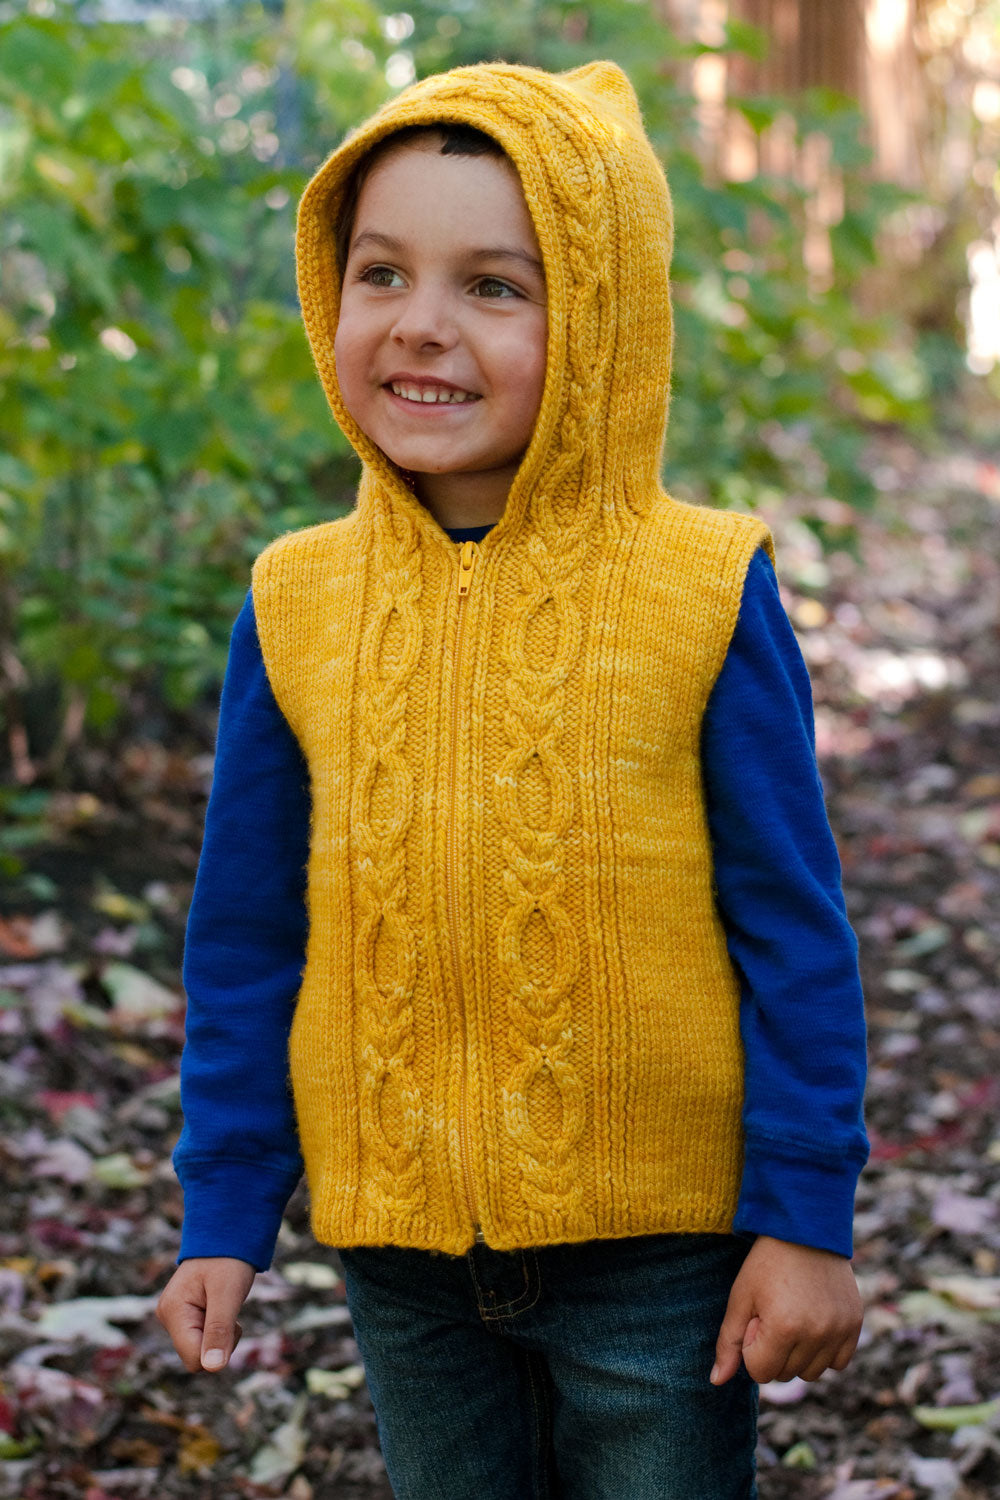 Autumn Hike Hoodie cabled kid's vest knitting pattern